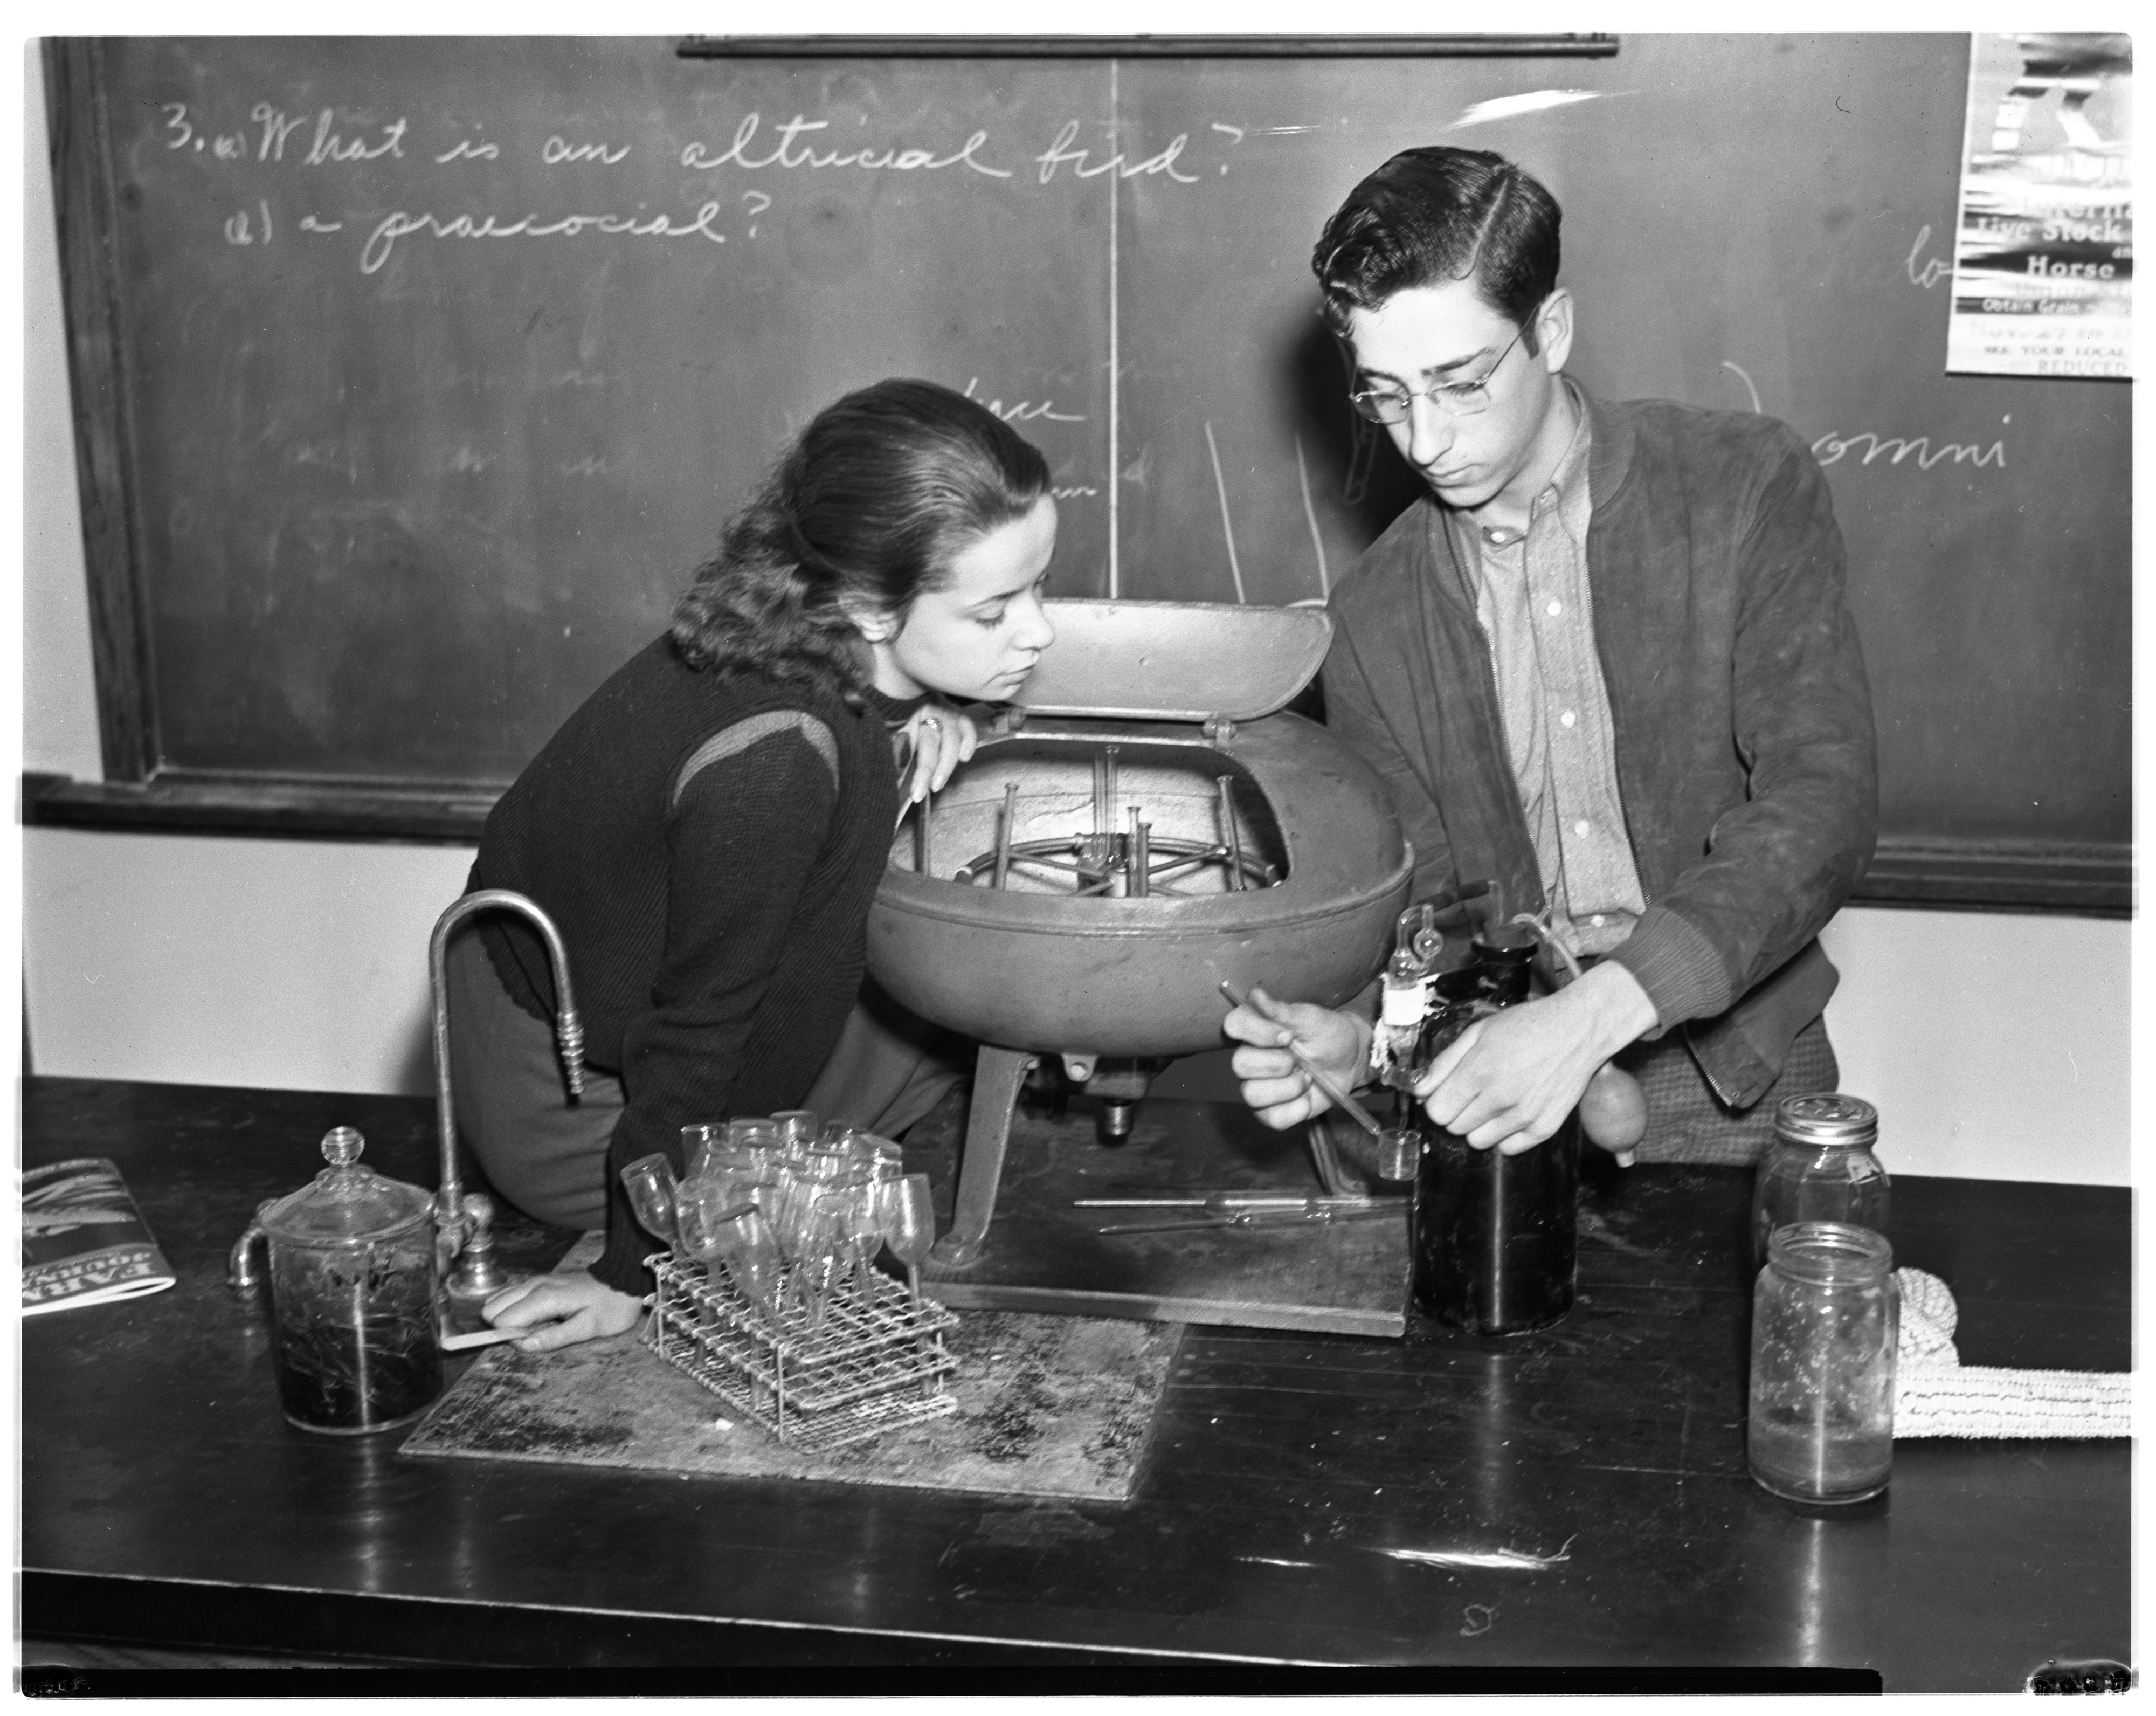 Milk Tester John Carver at Ypsi High School image